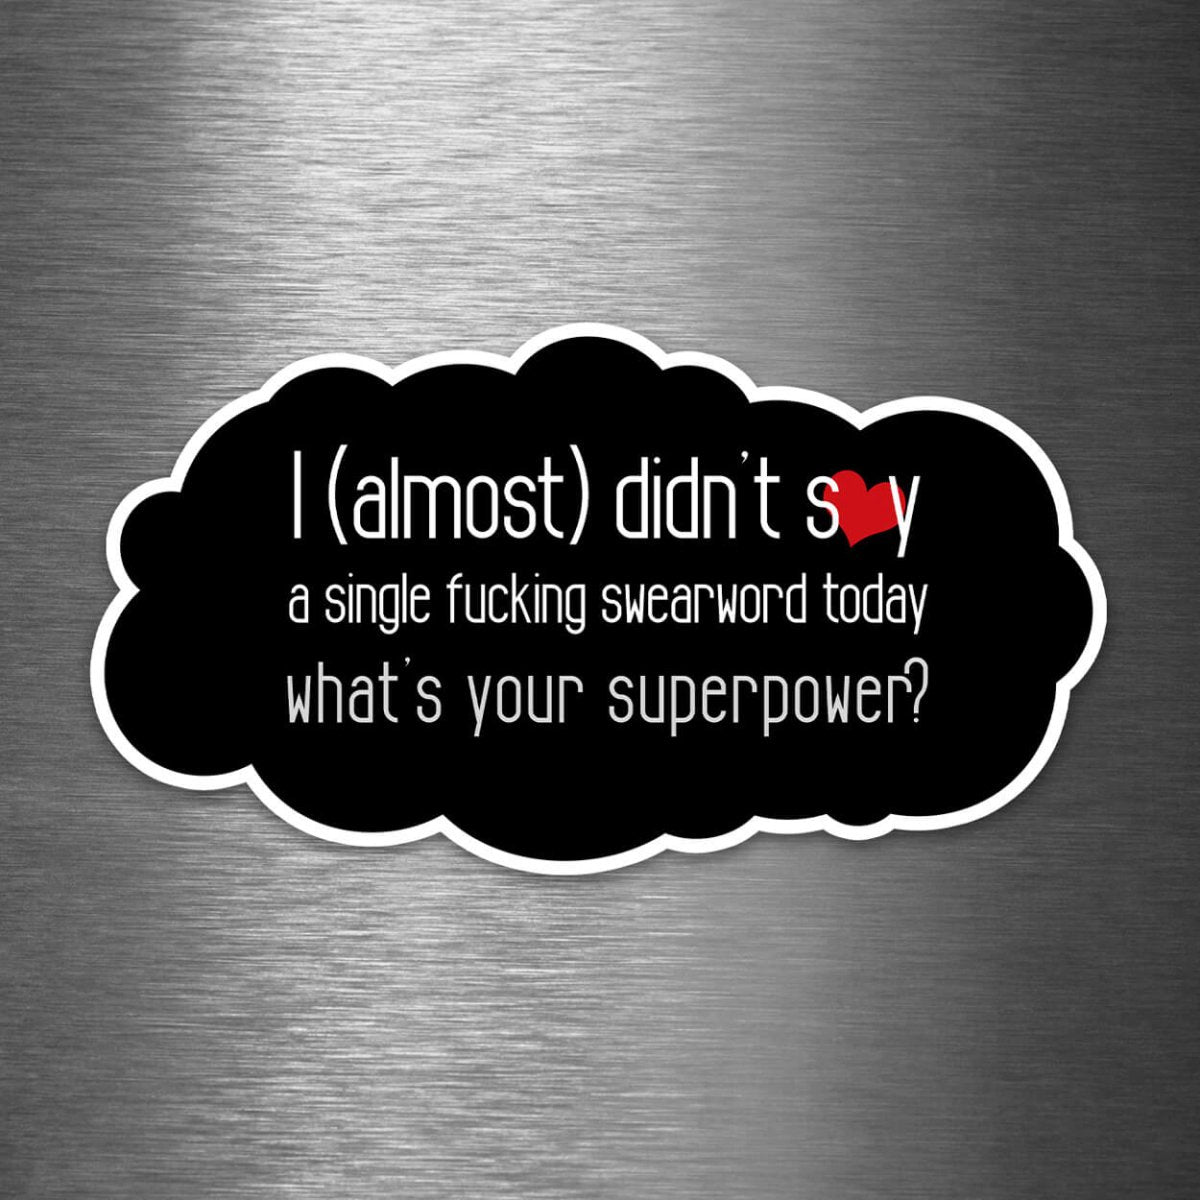 I Almost Didn't Say a Single F*cking Swearword Today - What's Your Superpower? - Vinyl Sticker - Dan Pearce Sticker Shop